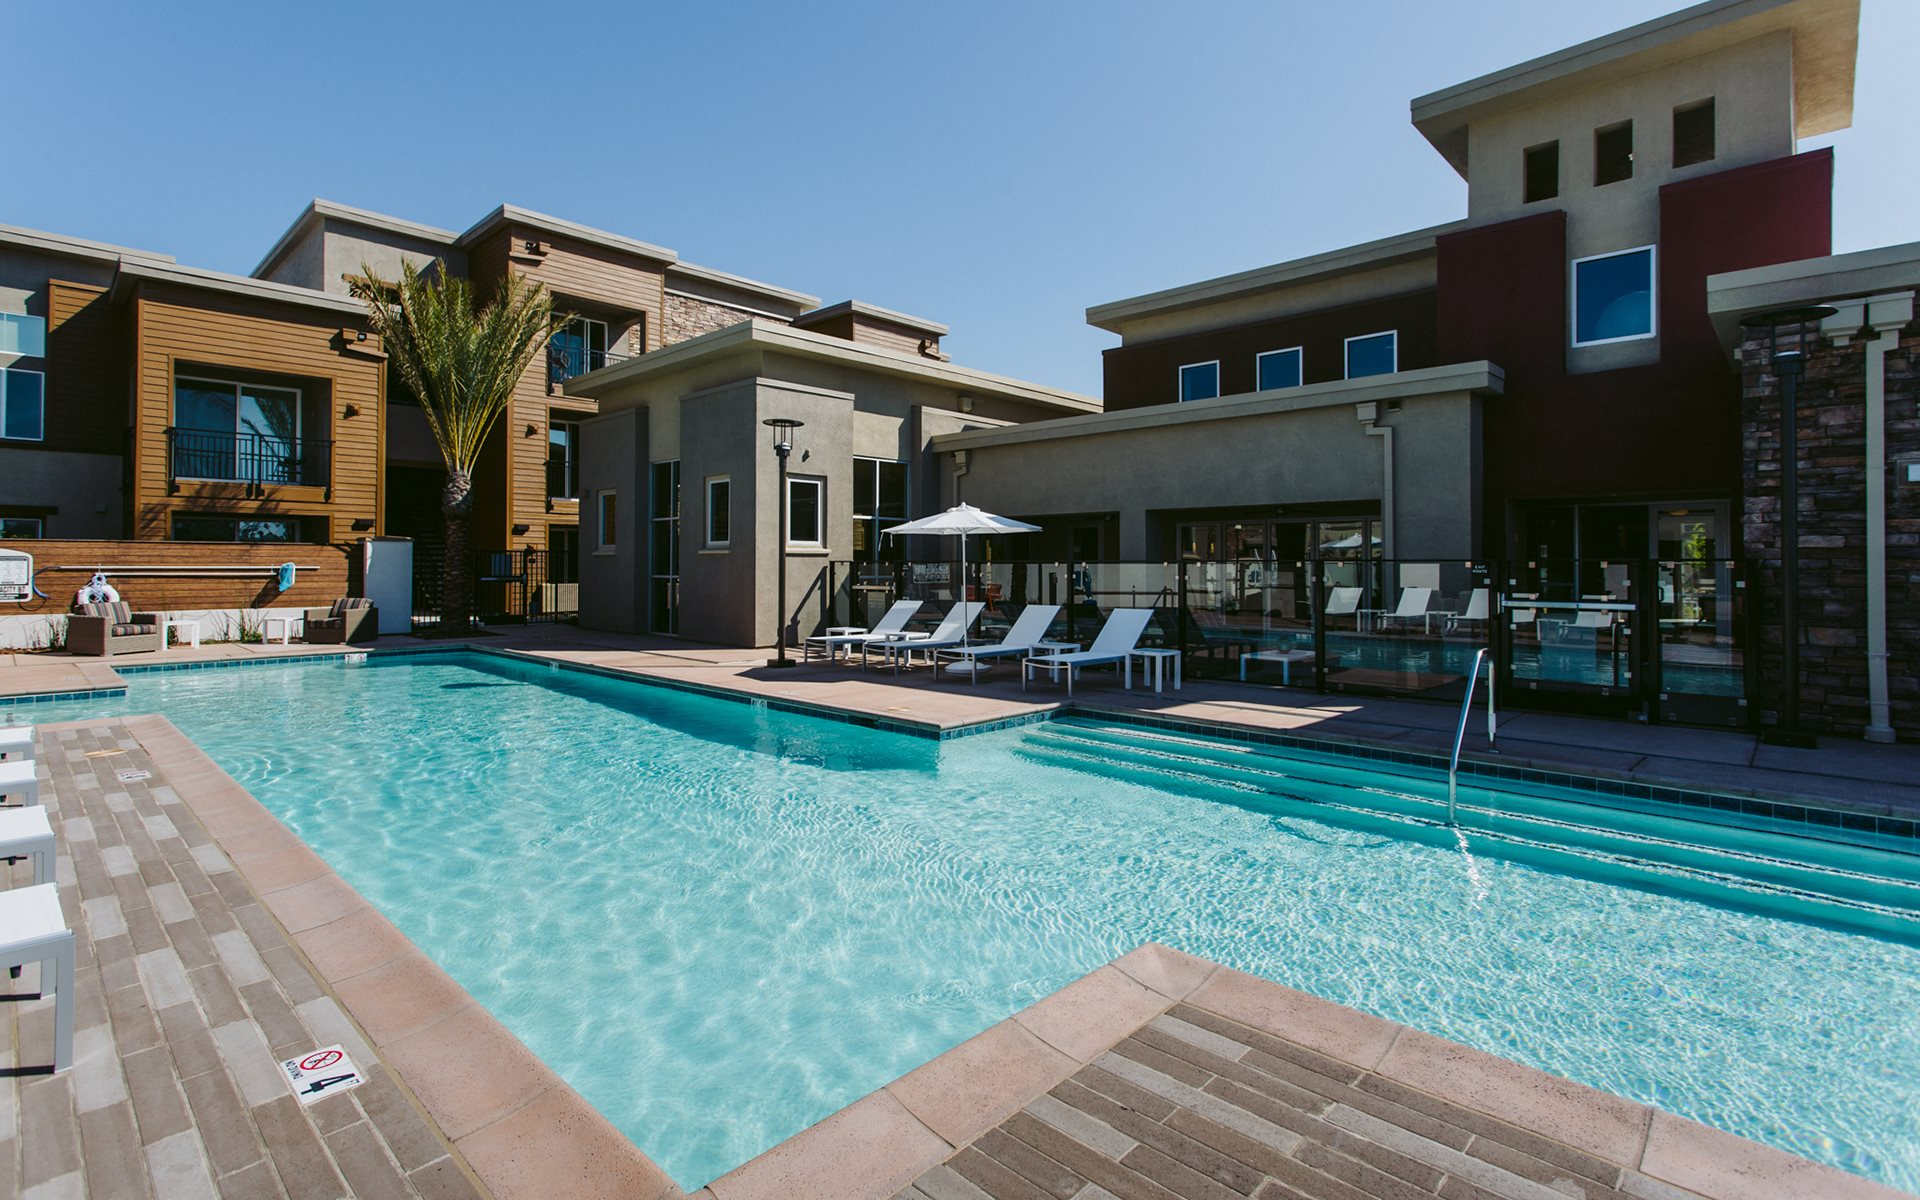 Pool and Lounge Chairs  l Garnet Creek Apartments in Rocklin, Ca with pool